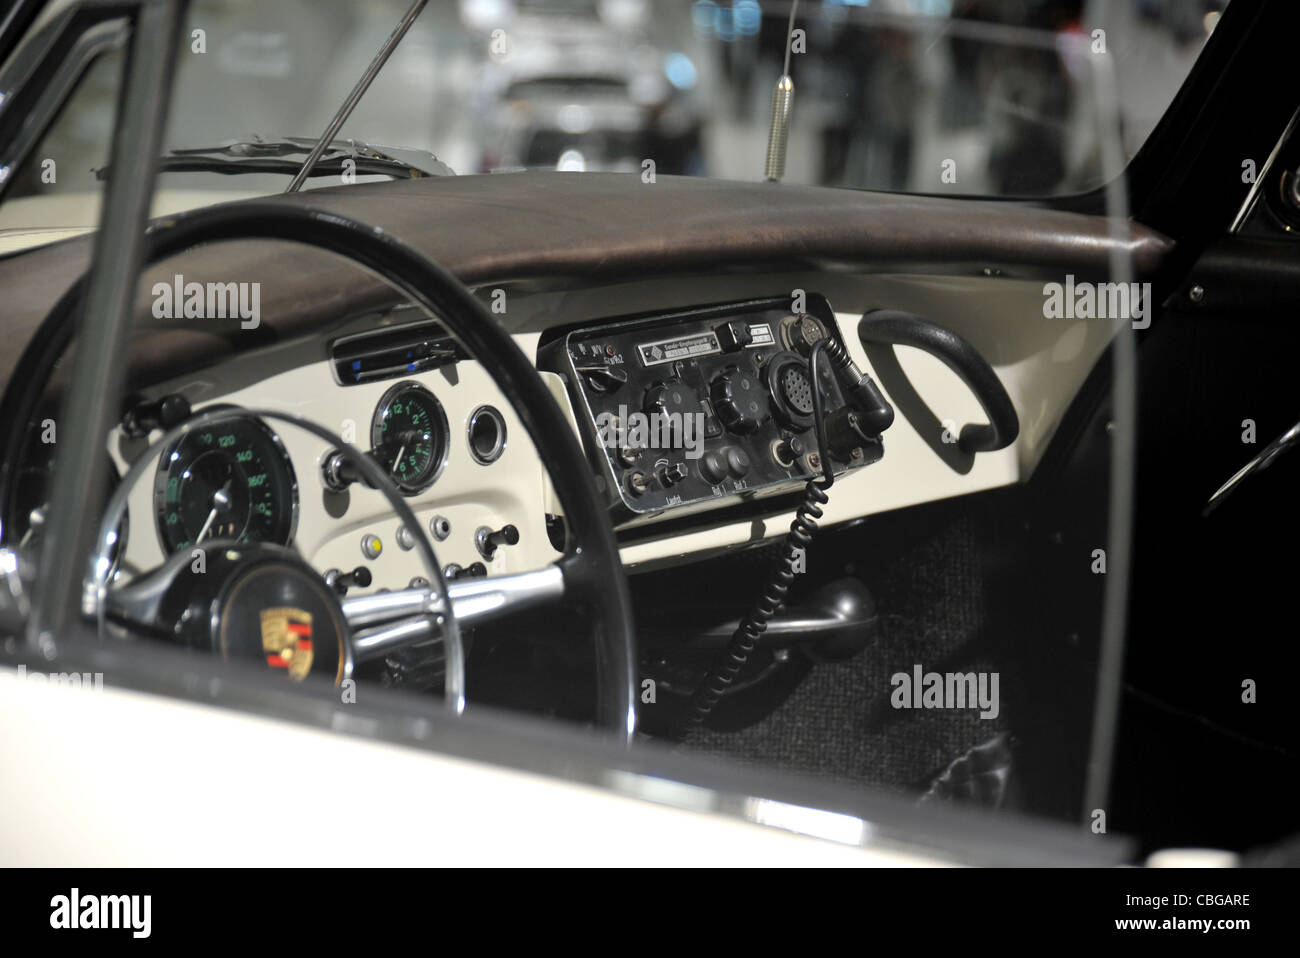 porsche 356 c police polizie liveried car interior showing radio as stock photo royalty free. Black Bedroom Furniture Sets. Home Design Ideas